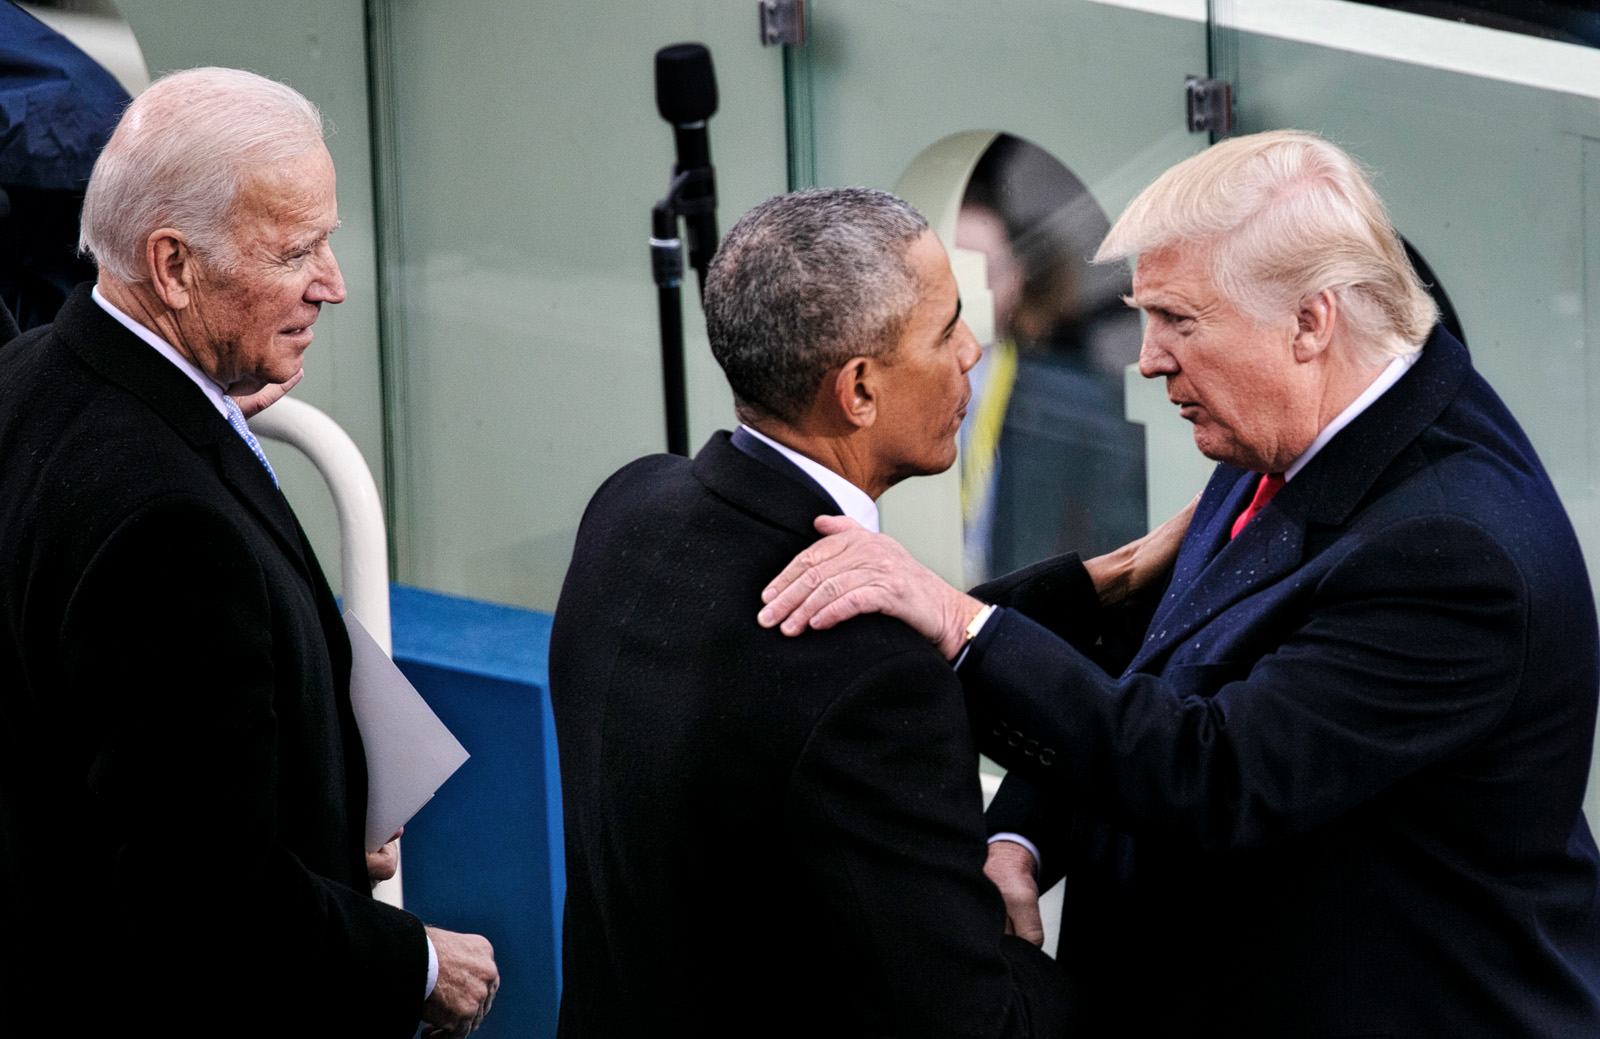 President Donald J. Trump greets former President Barack Obama immediately after being sworn in as the 45th President of the United States at the U.S. Capitol on January 20, 2017 in Washington DC. (Photo by David Hume Kennerly)